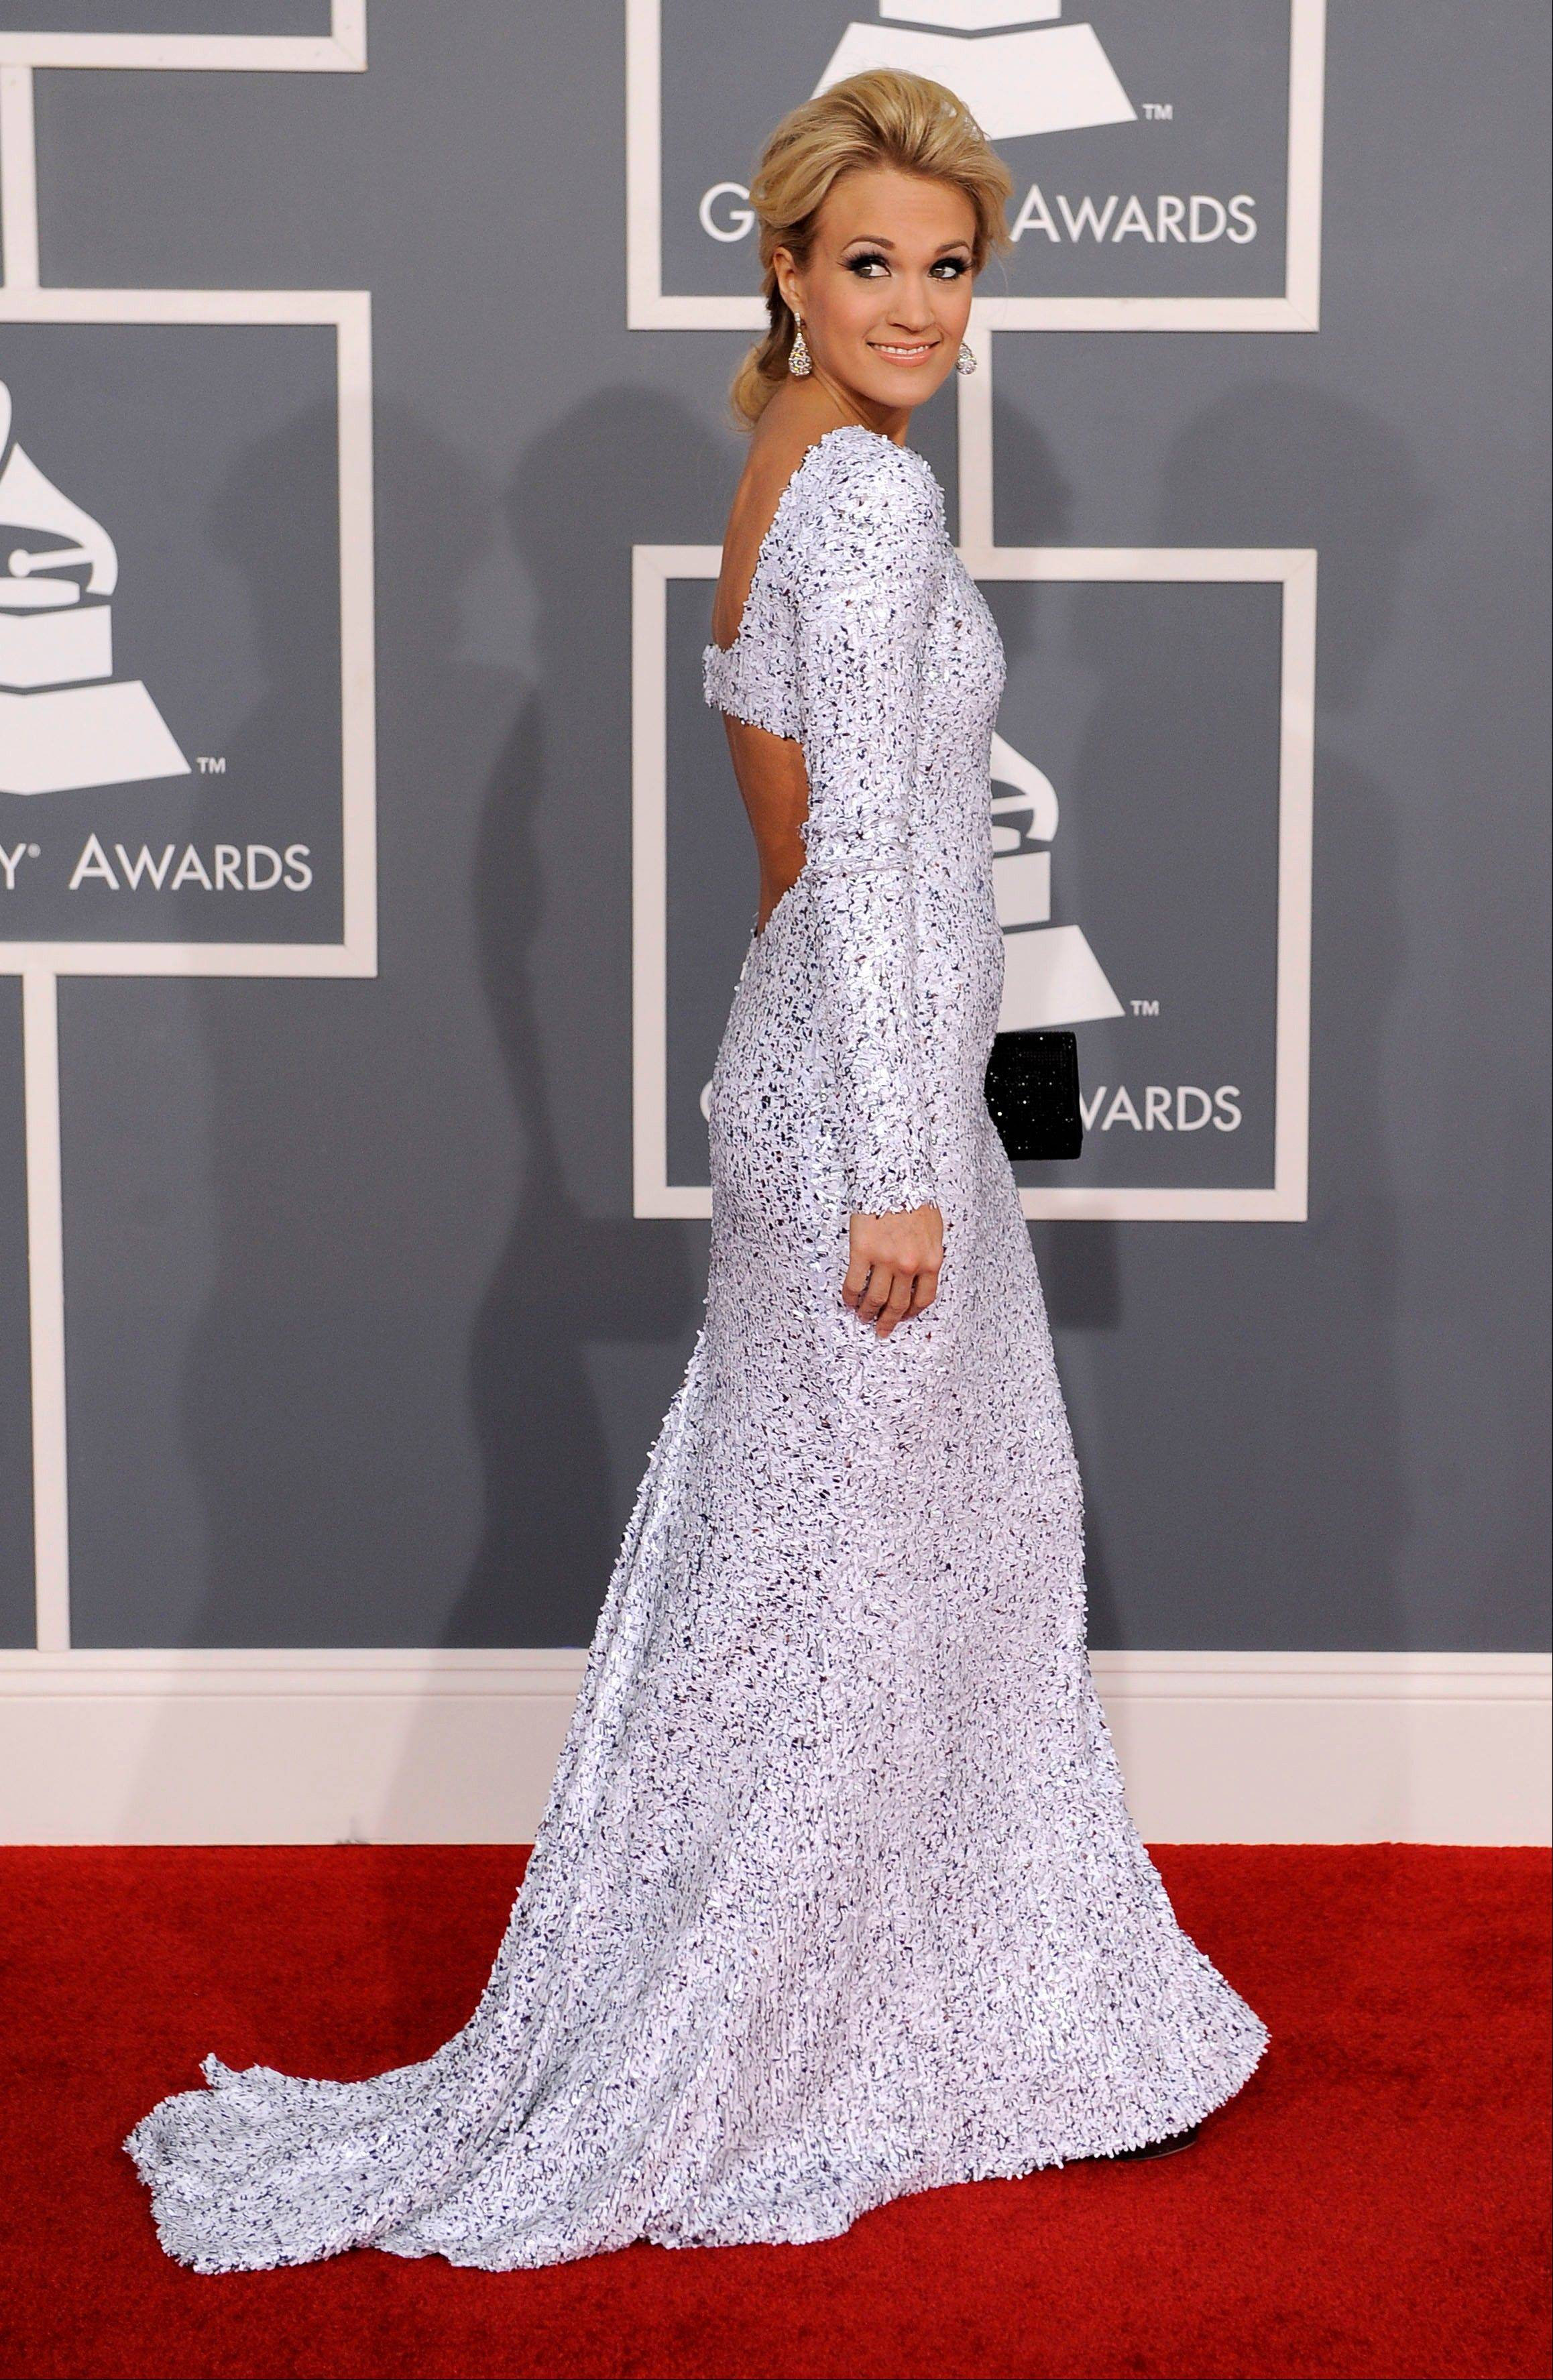 Carrie Underwood arrives Sunday at the 54th annual Grammy Awards in Los Angeles.